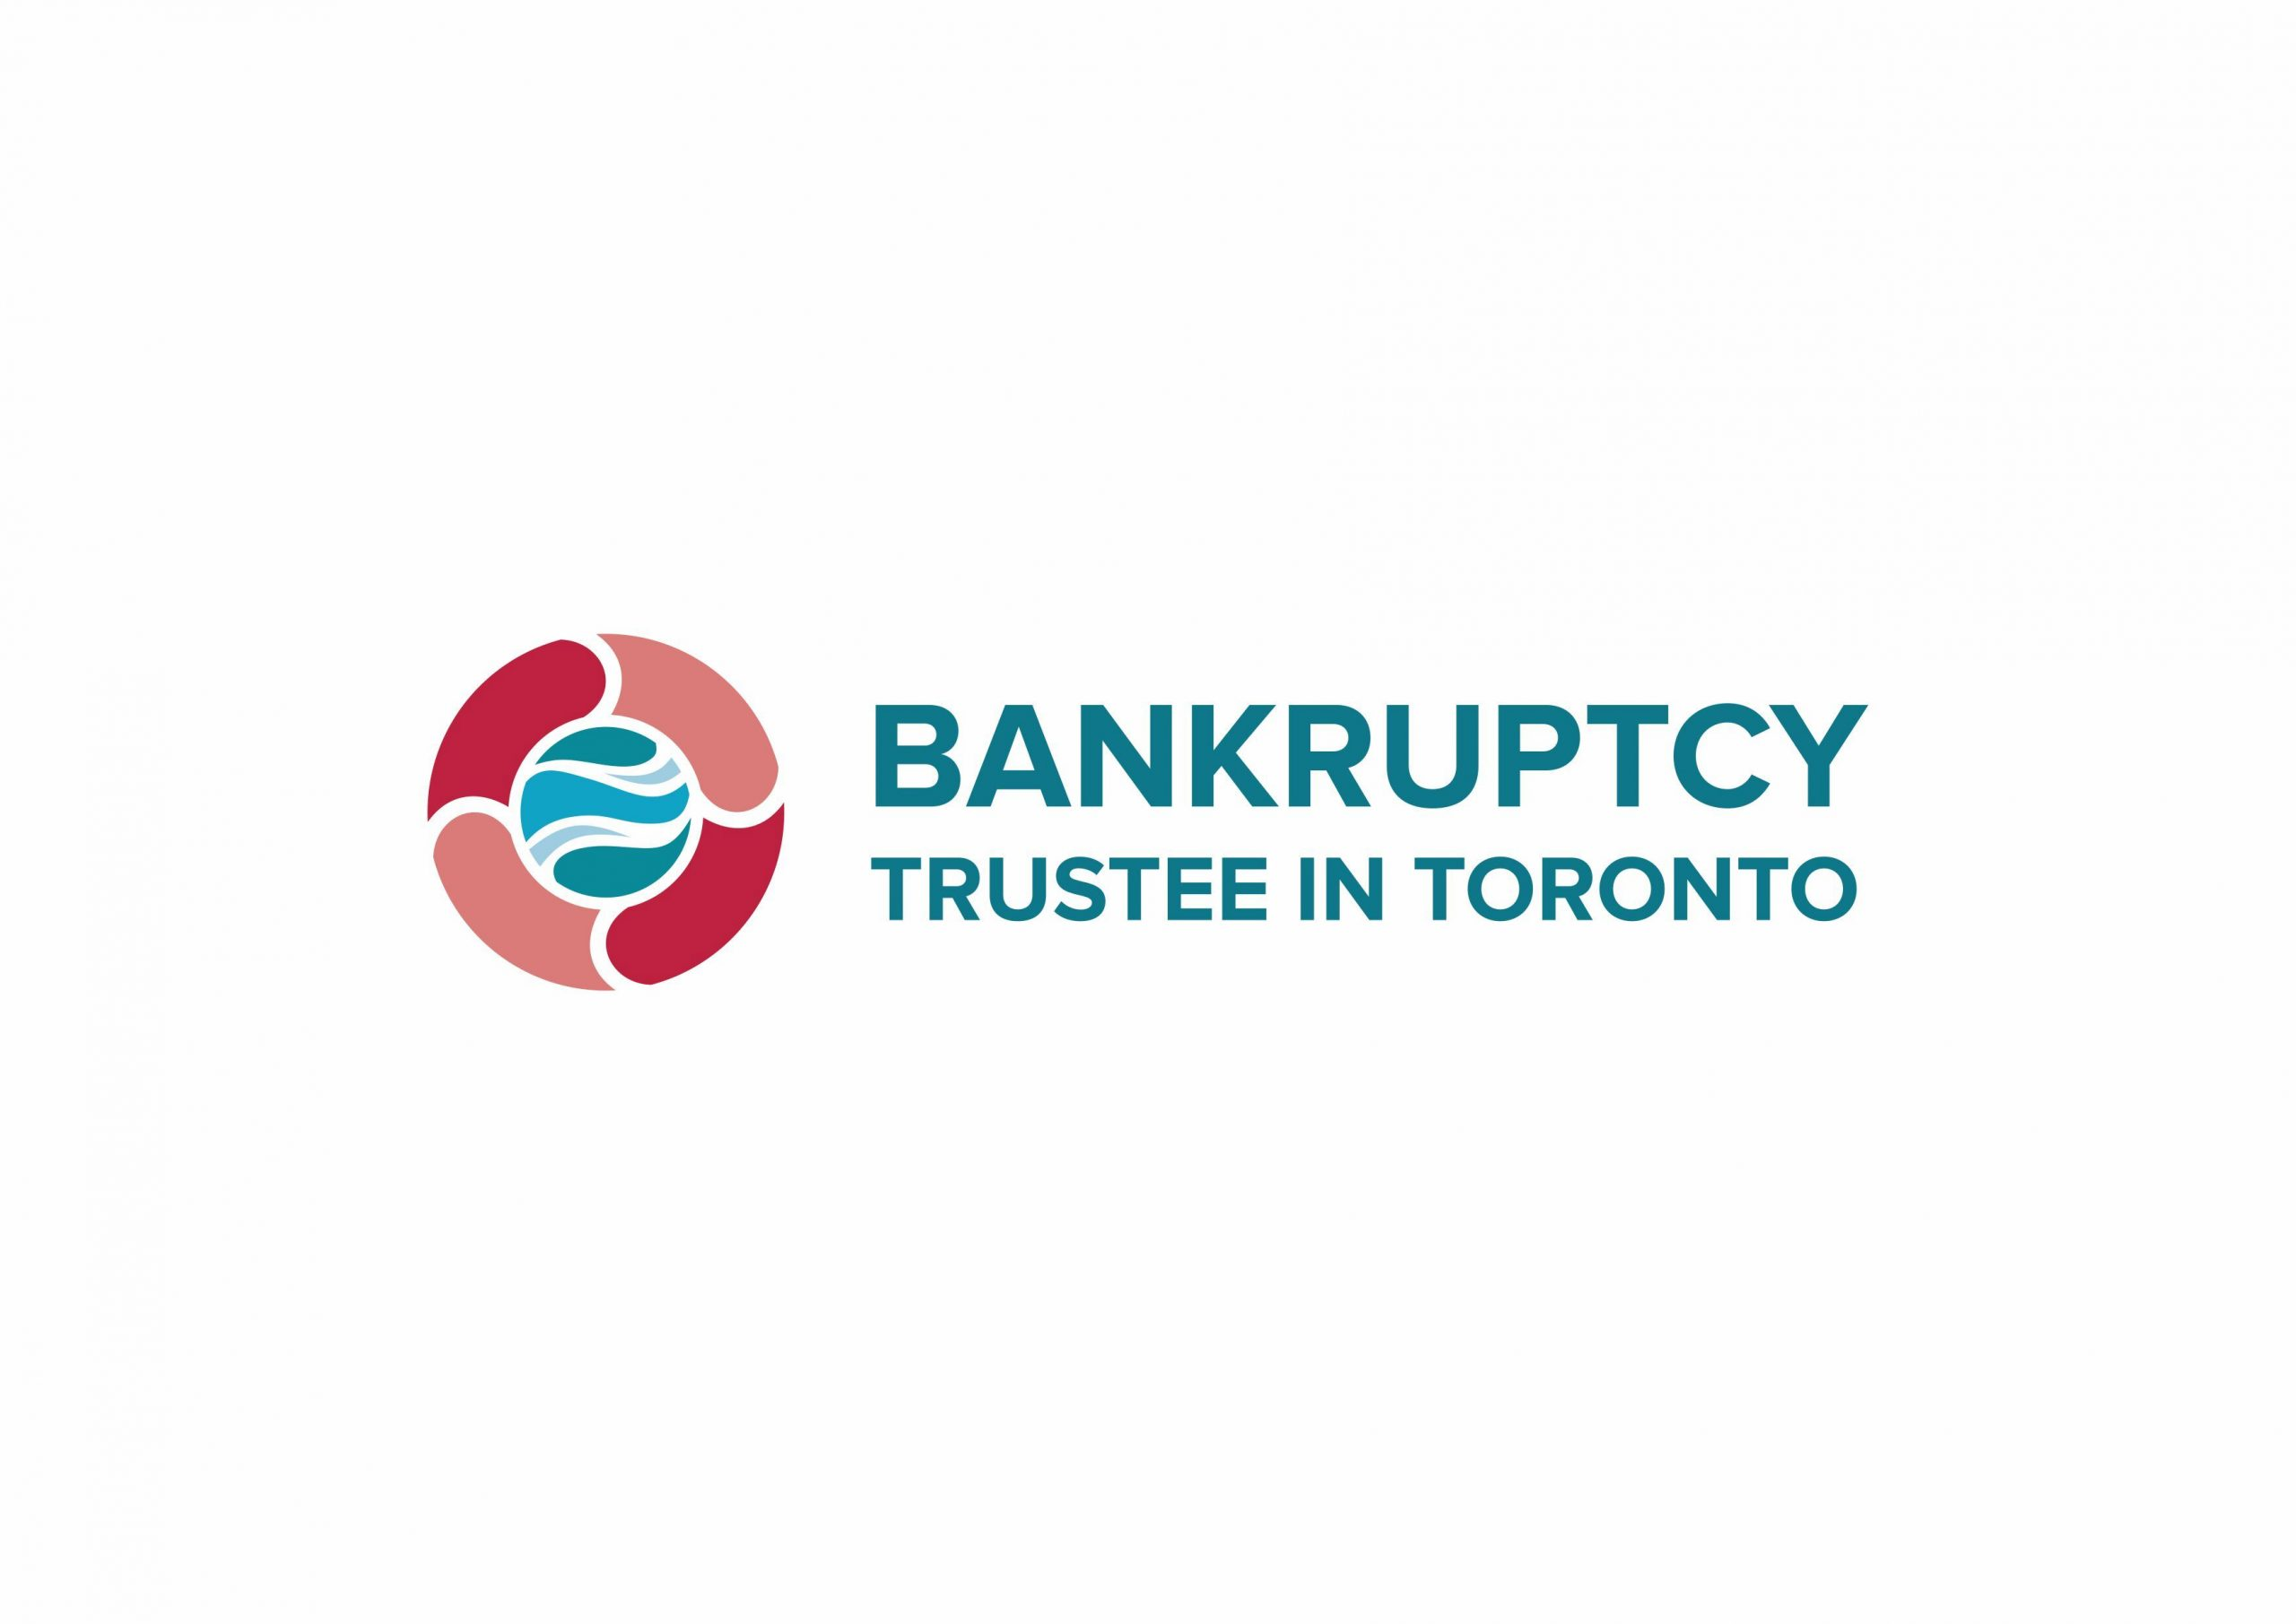 Bankruptcy Trustee In Toronto